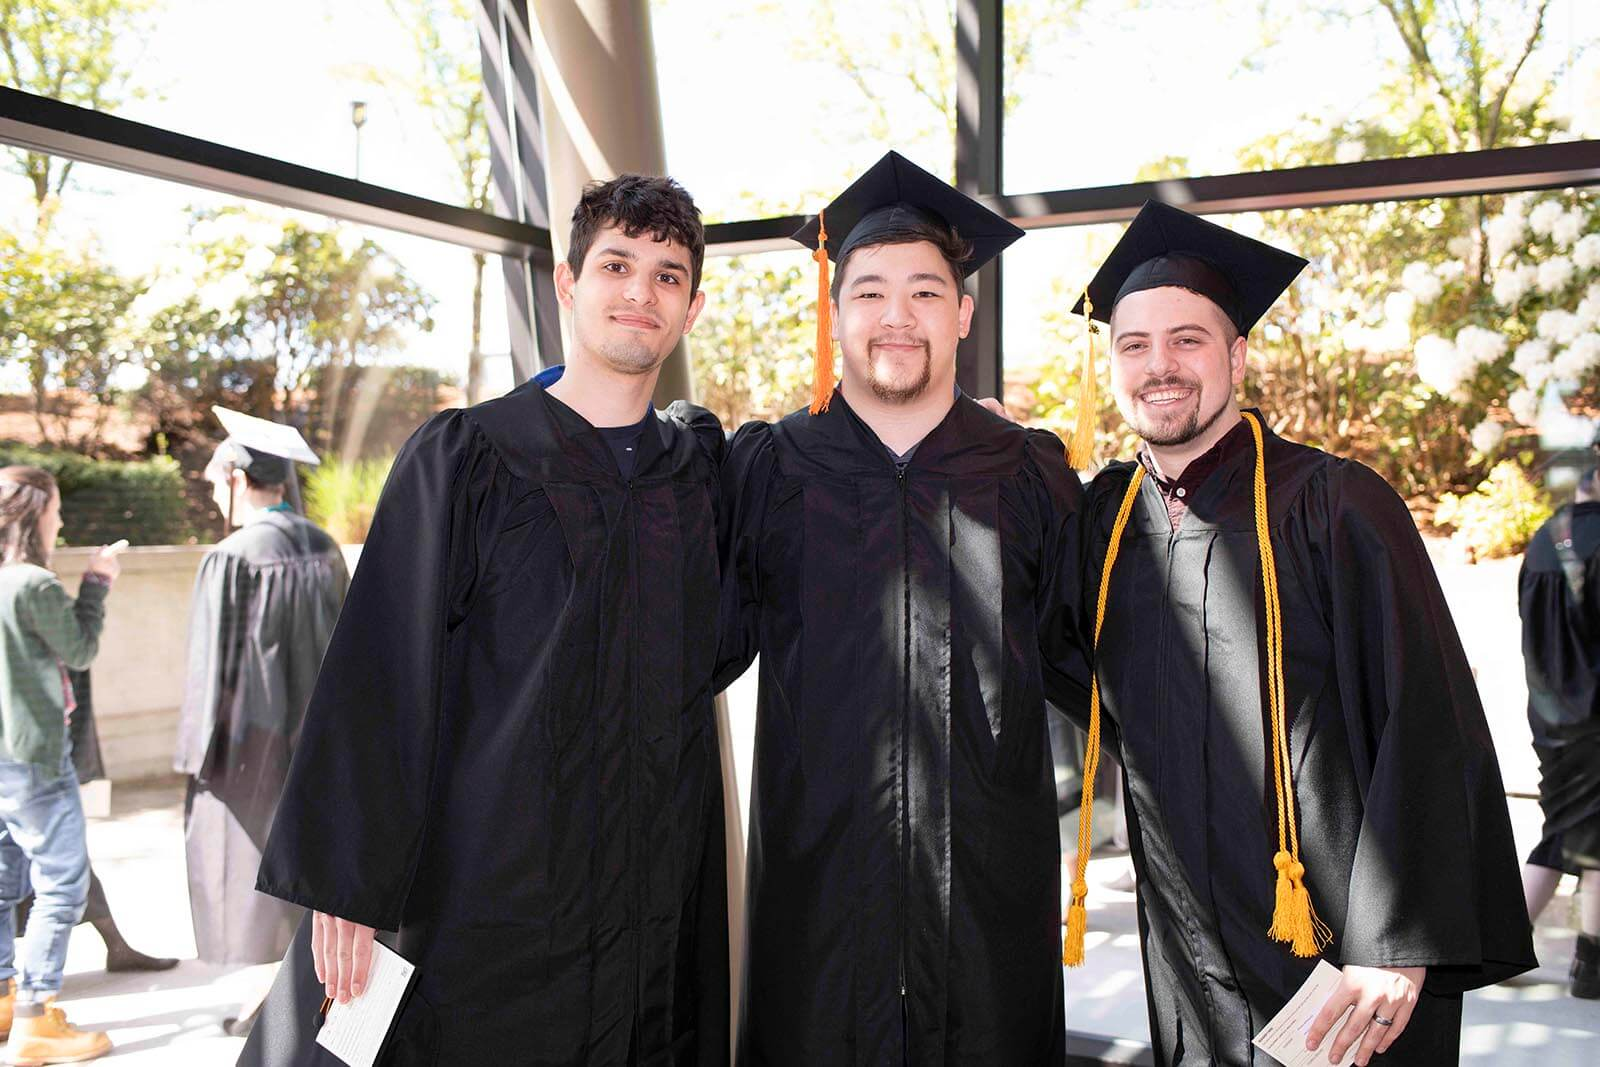 Three students in graduation robes and mortarboards pose for a photo in front of a floor-to-ceiling glass wall.